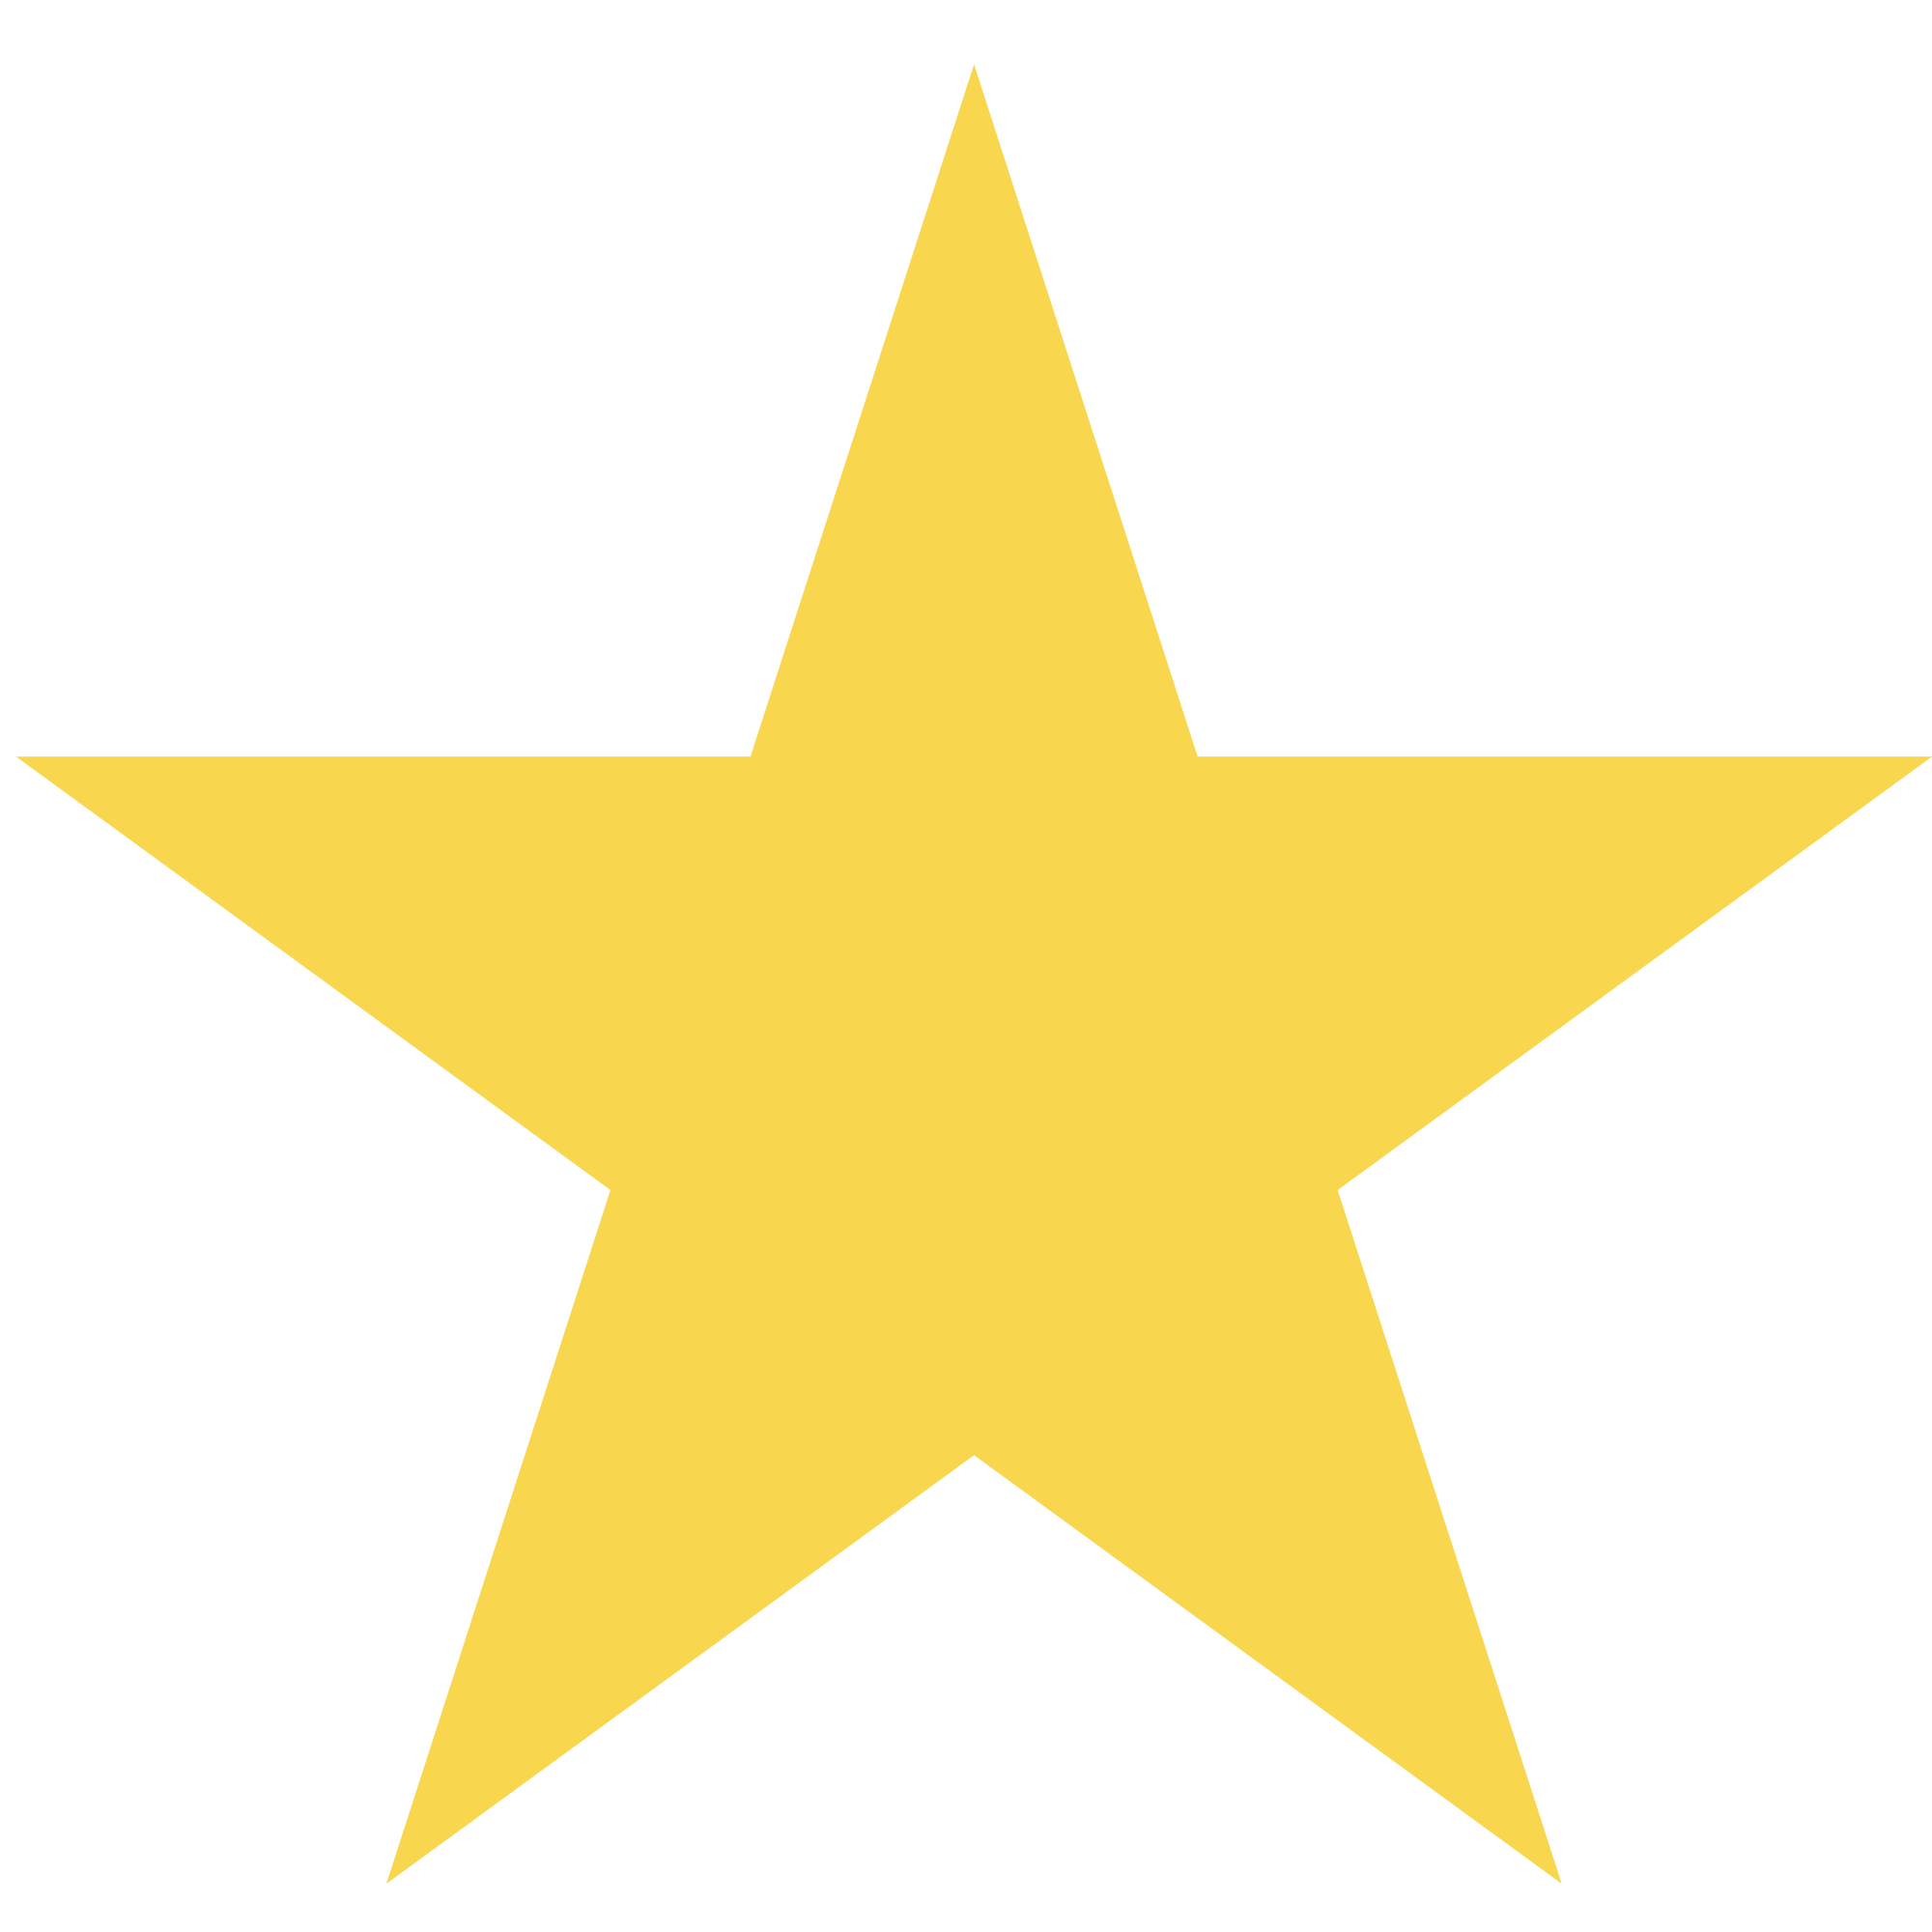 It's just a picture of Canny Printable Yellow Stars